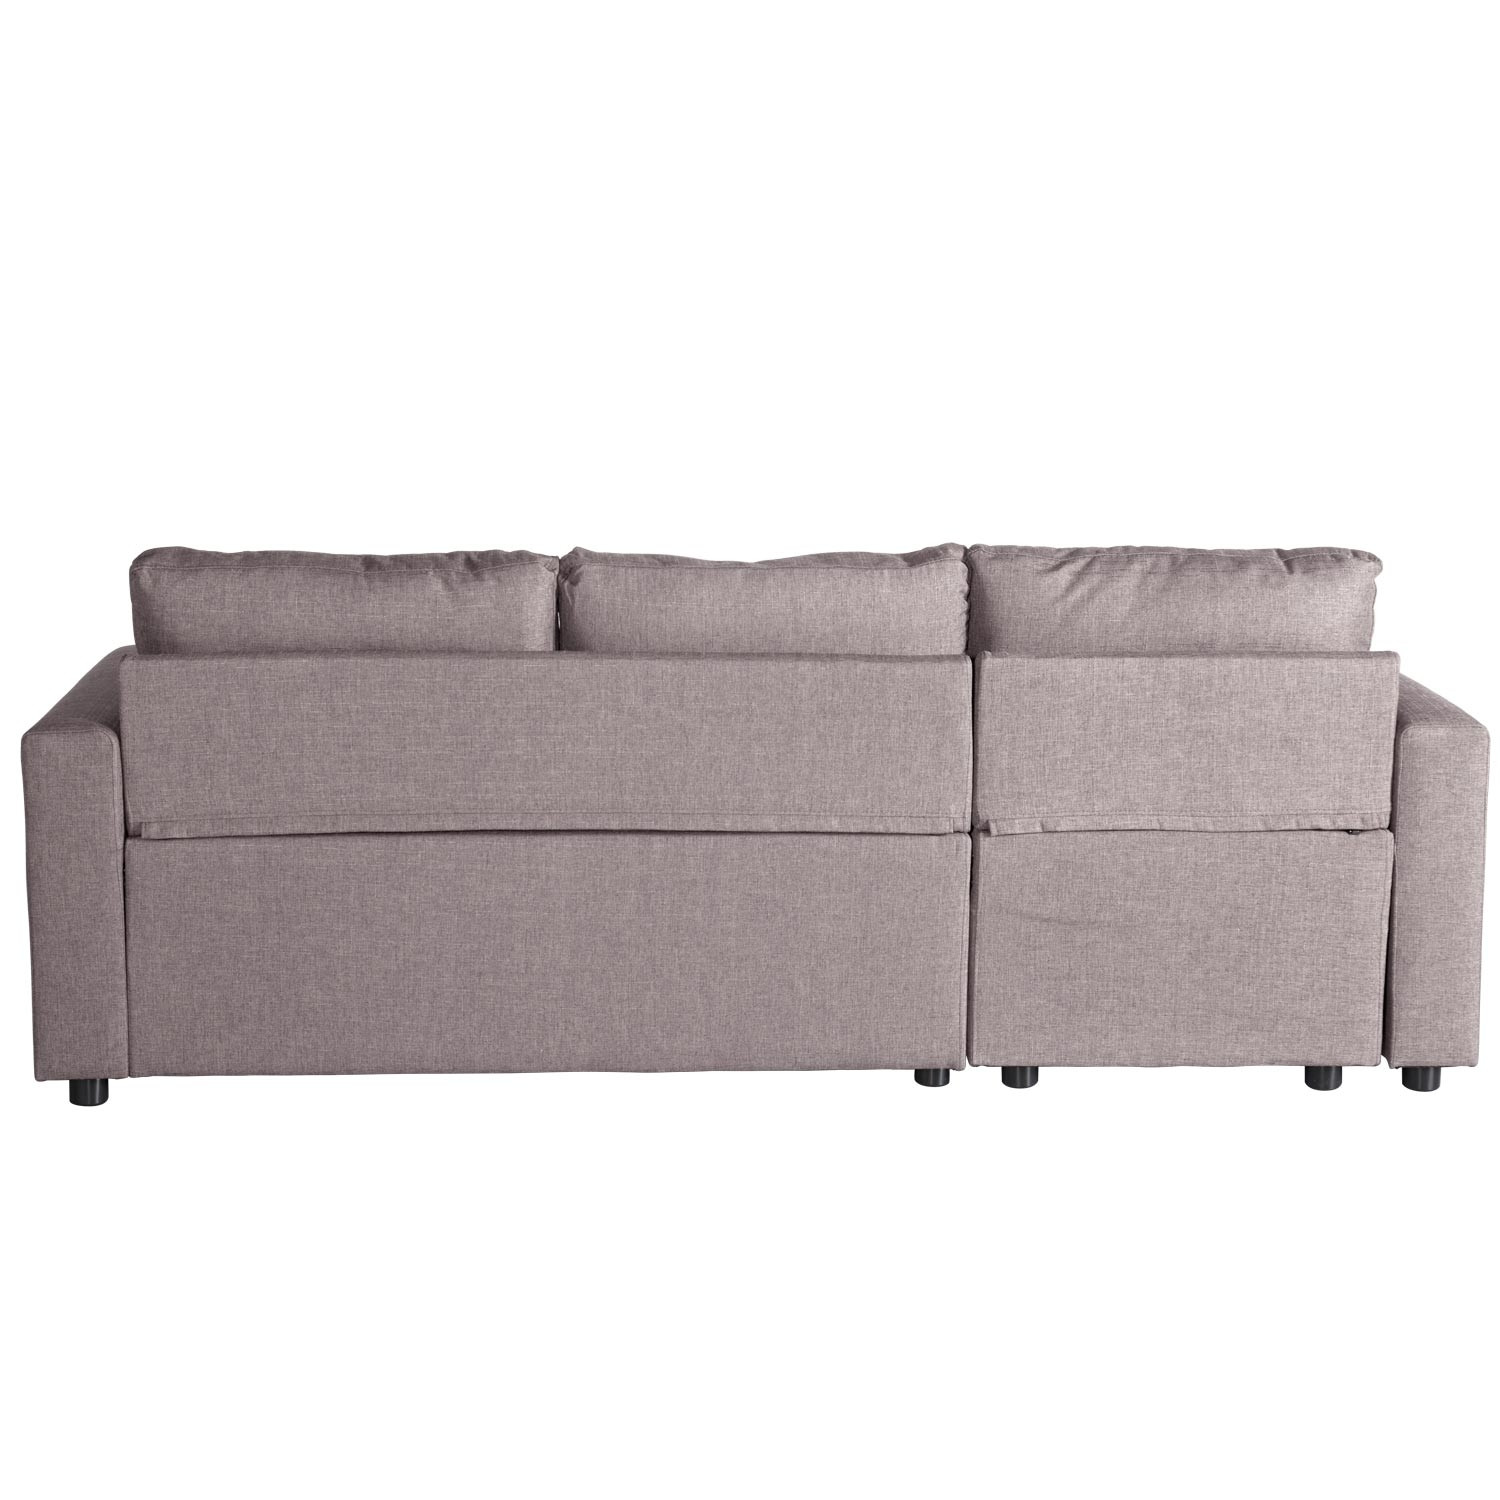 Chaise Longue Cama Baratos Innovador Pra Online sofá Cama Chaise Longue Adara Barato 490 00 Of Chaise Longue Cama Baratos Contemporáneo sofa Cama Chaise Longue Barato Madrid